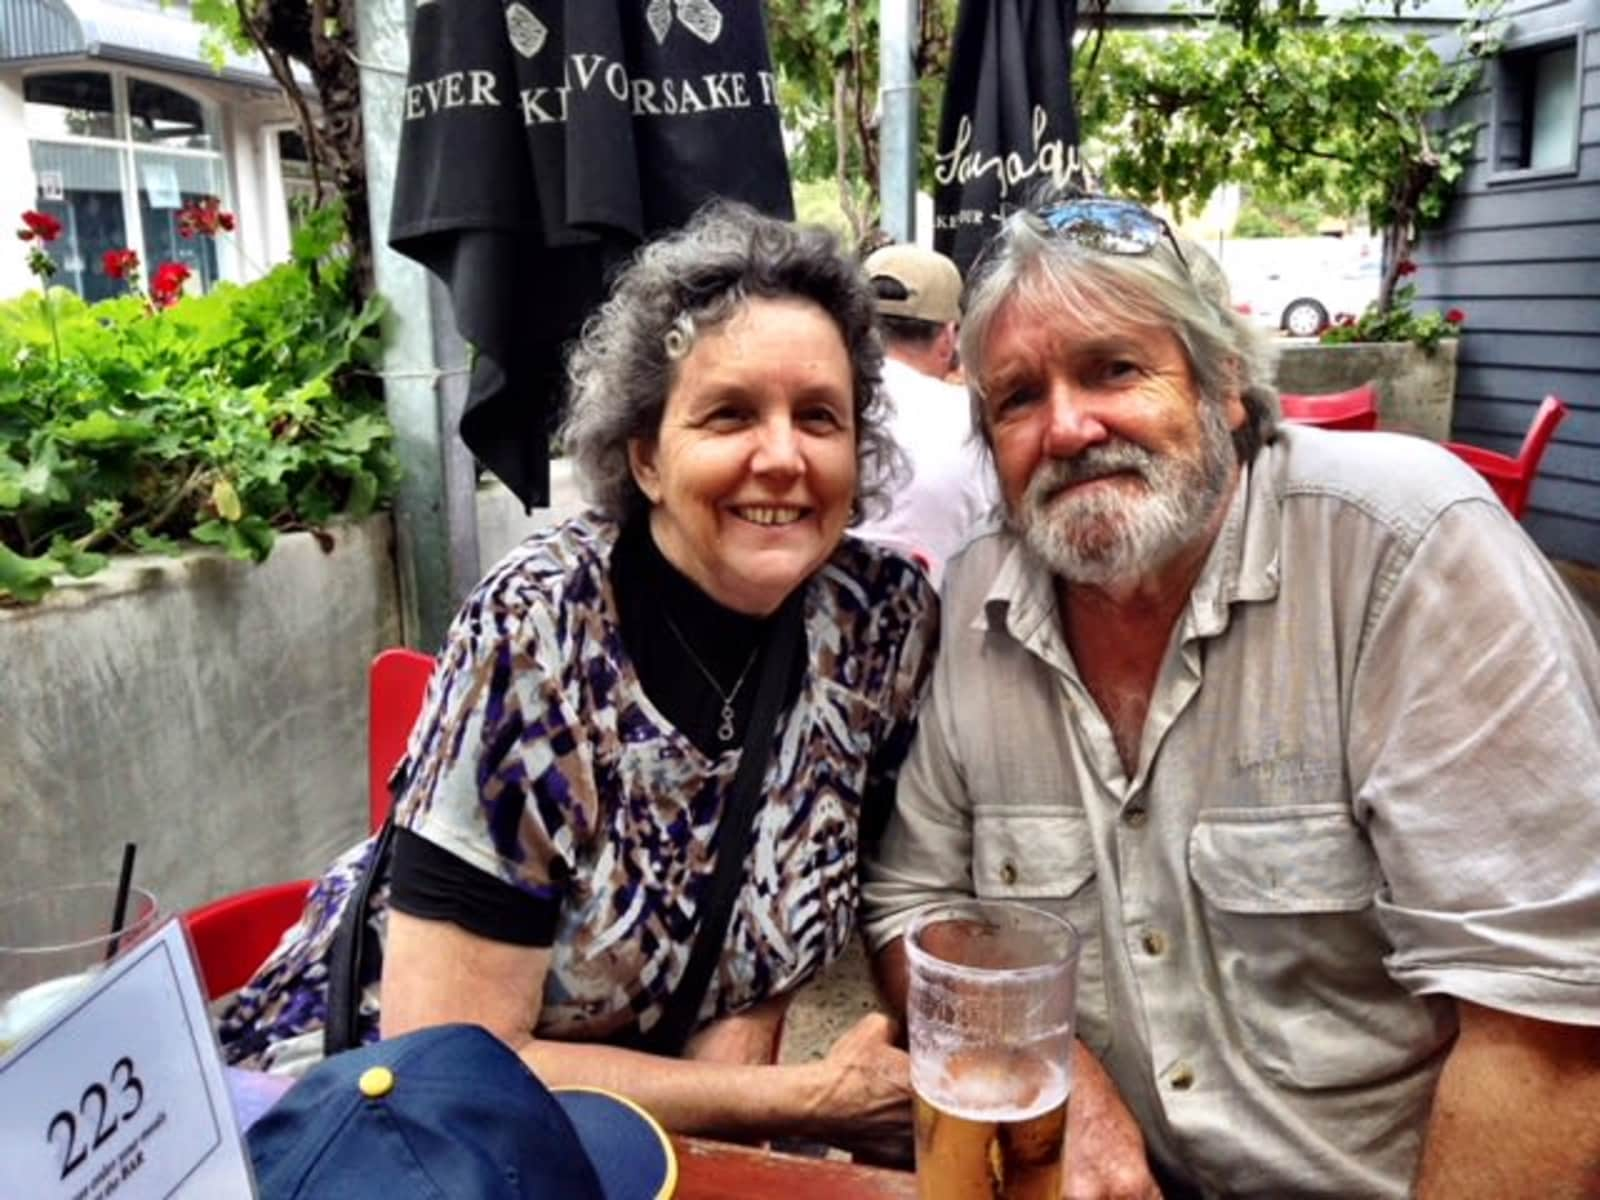 Maryanne & Bill from Landsborough, Queensland, Australia